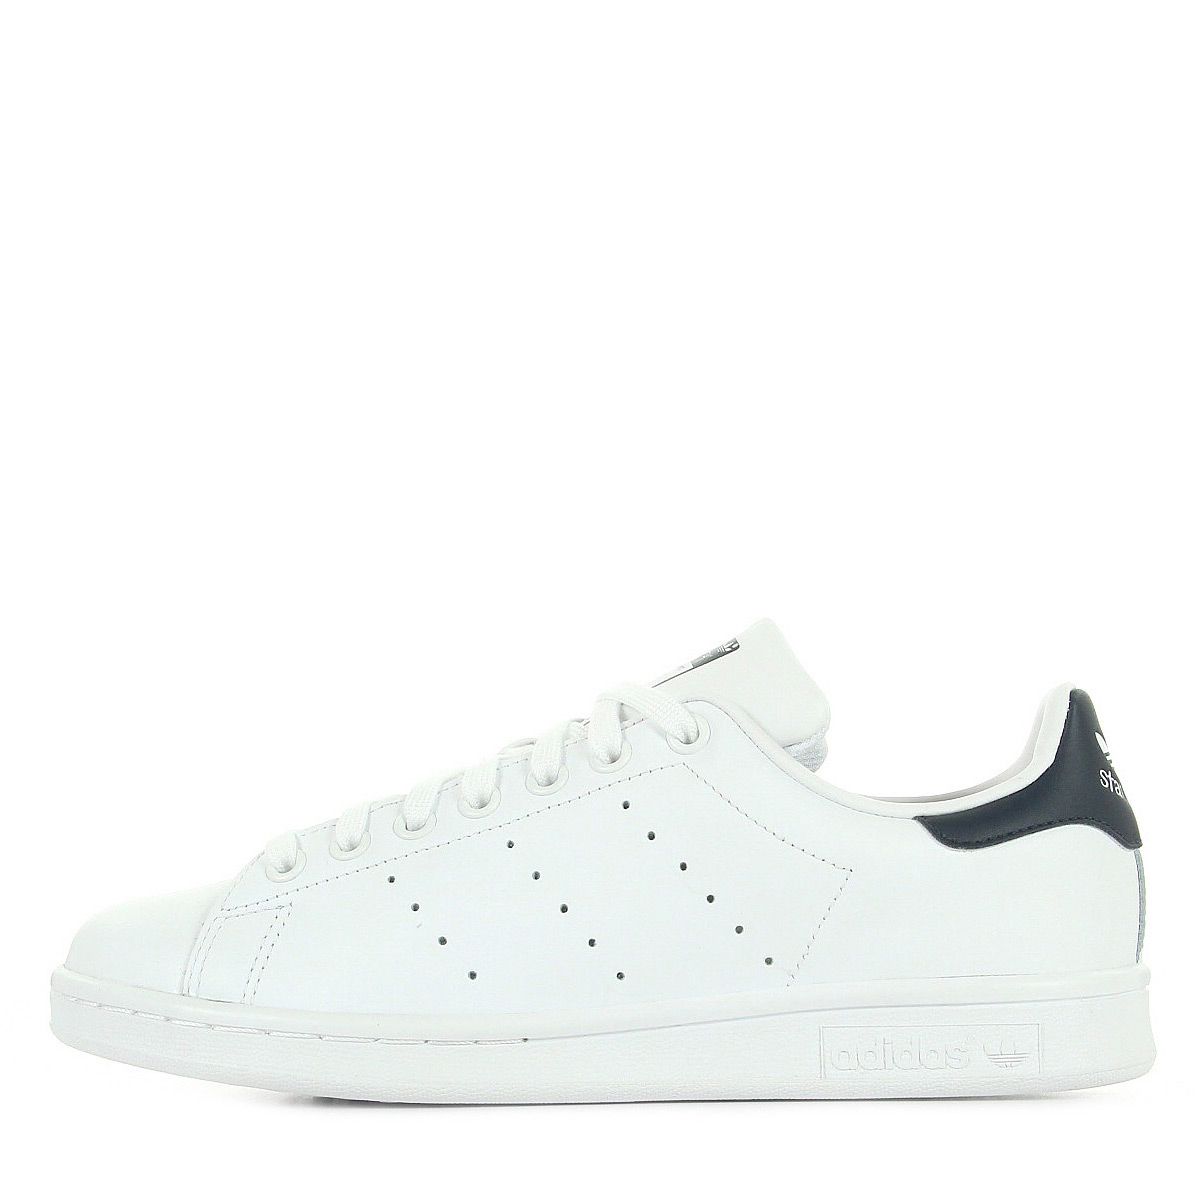 chaussures baskets adidas homme stan smith taille blanc blanche cuir lacets ebay